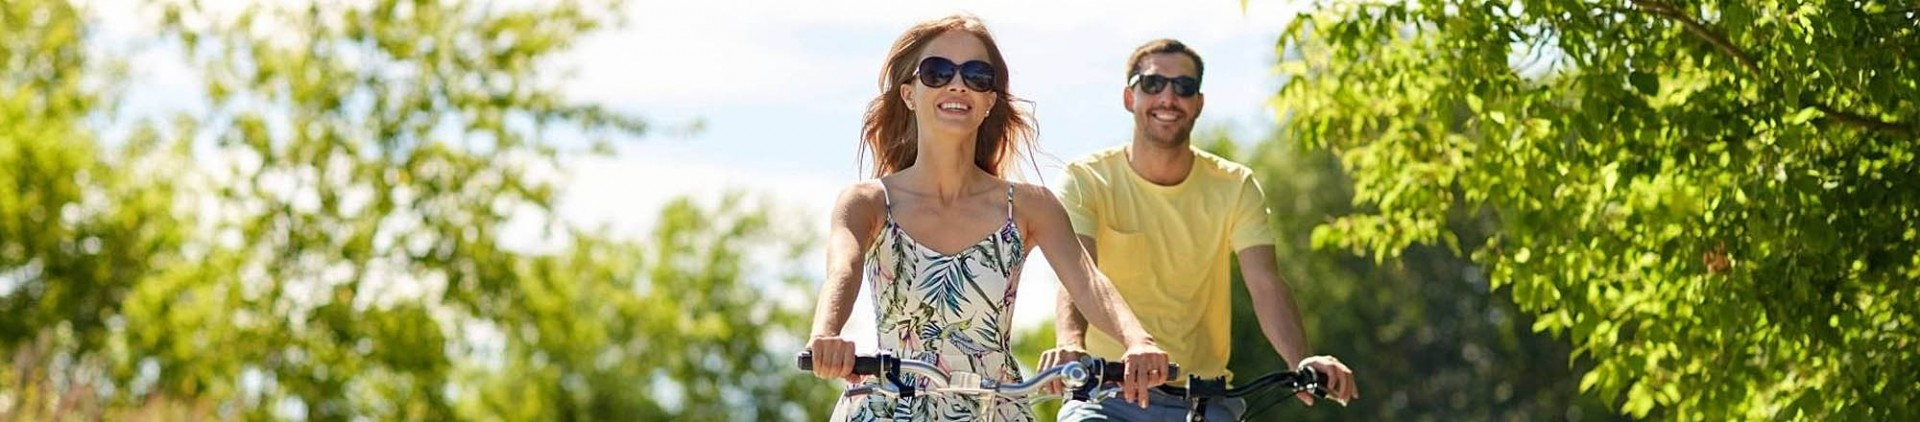 Cycling Connects - Interreg